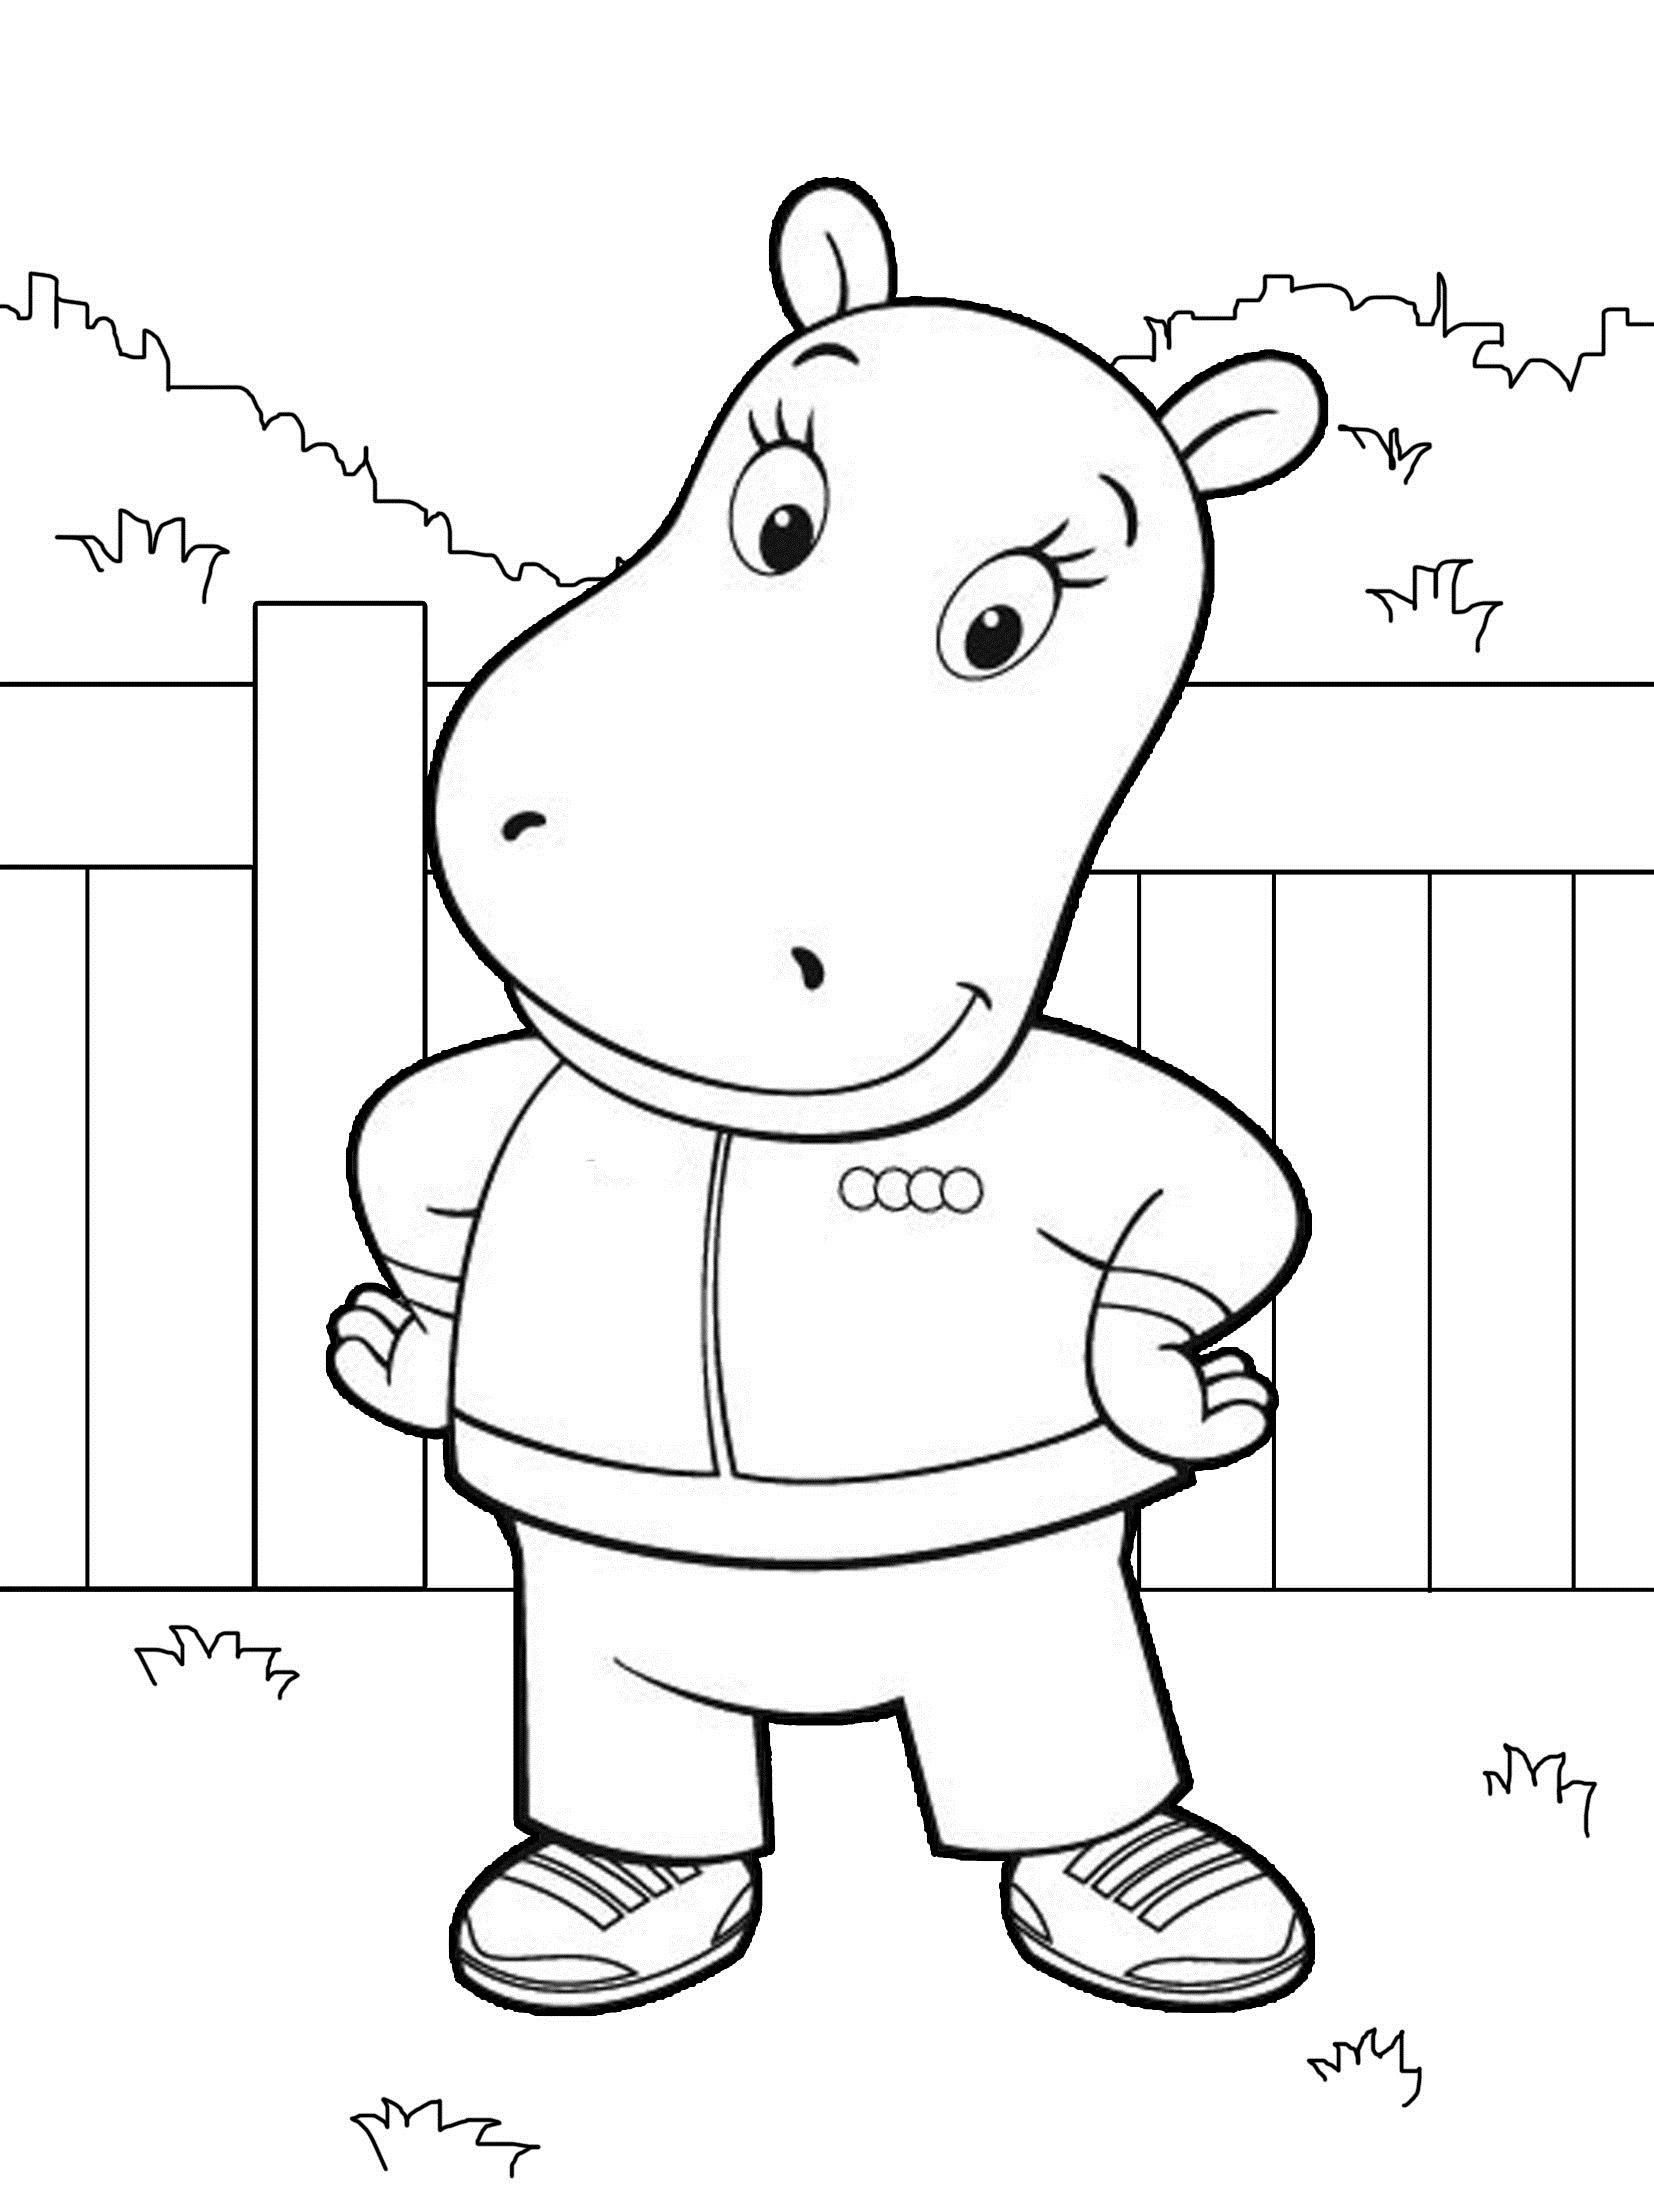 backyardigans coloring pages printables coloring me backyardigans coloring pages printables backyardigans coloring pages printables - Backyardigans Coloring Pages Print